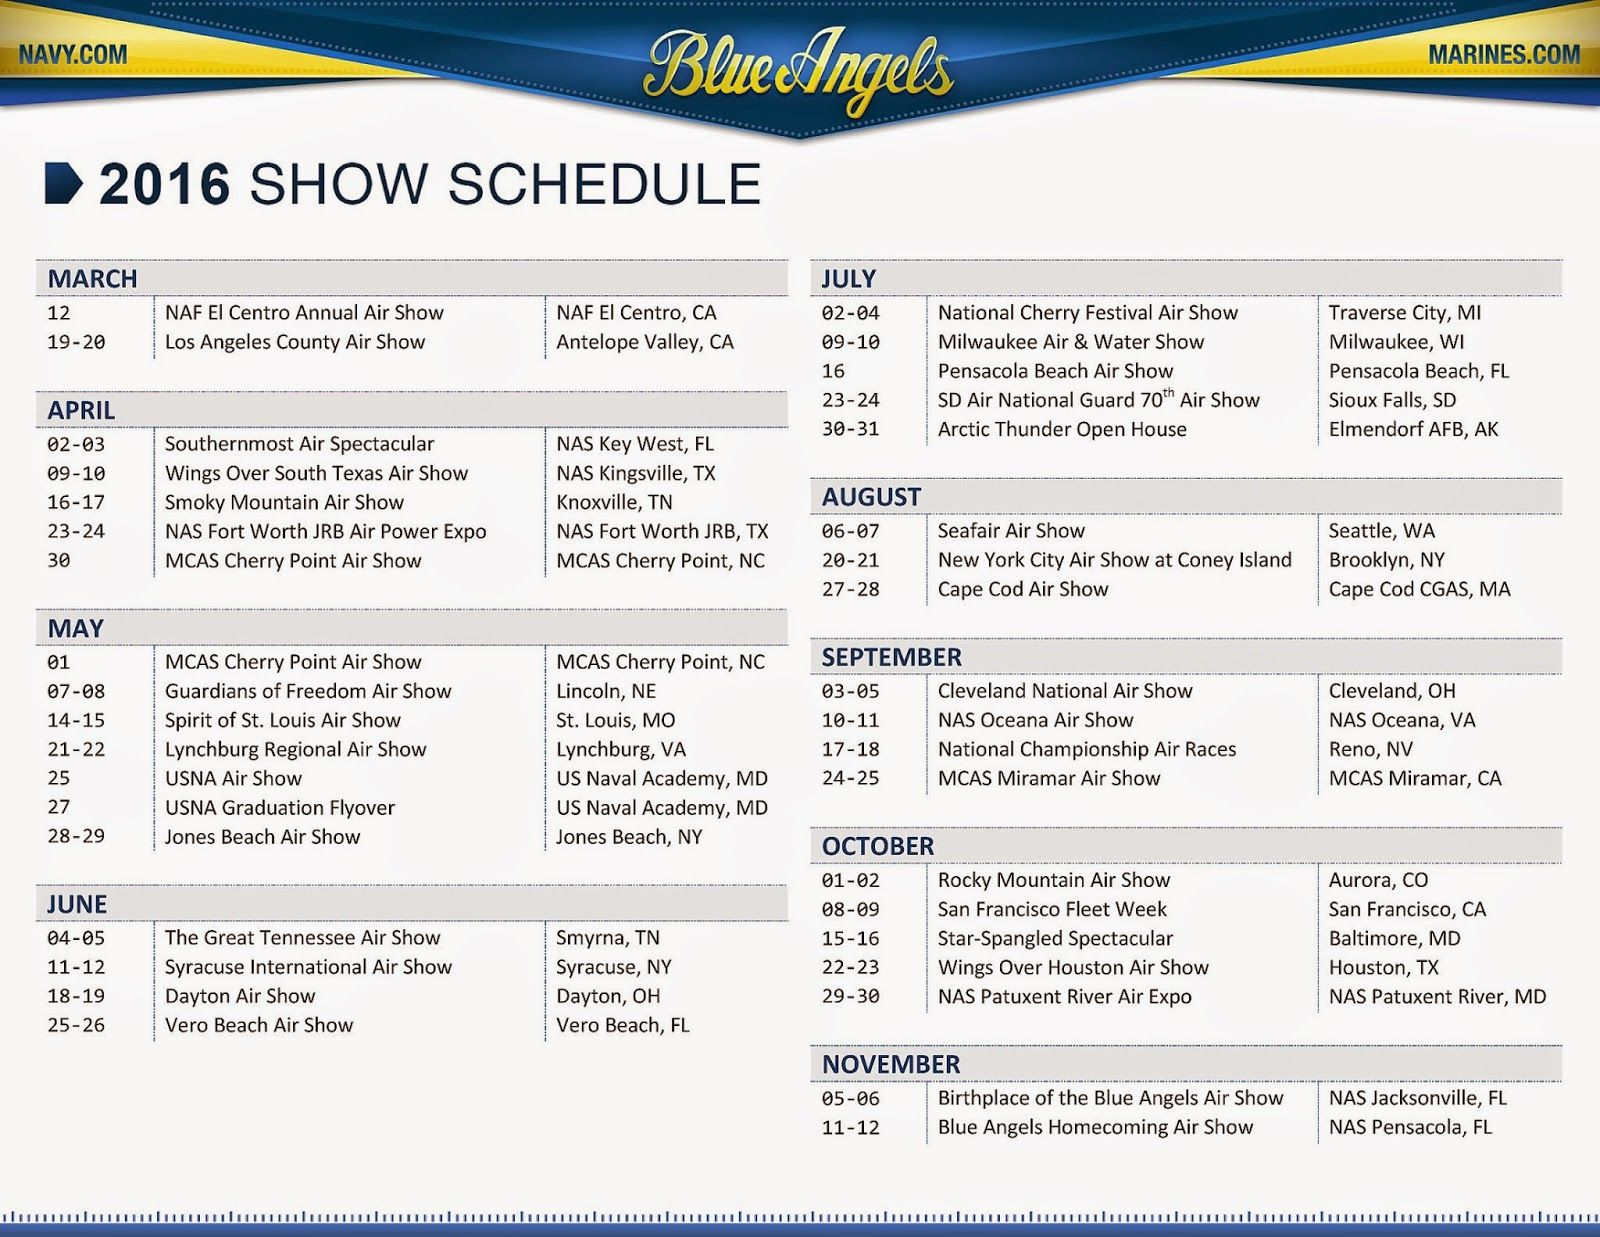 2016 Blue Angels SHOW SCHEDULE (With images) Blue angels